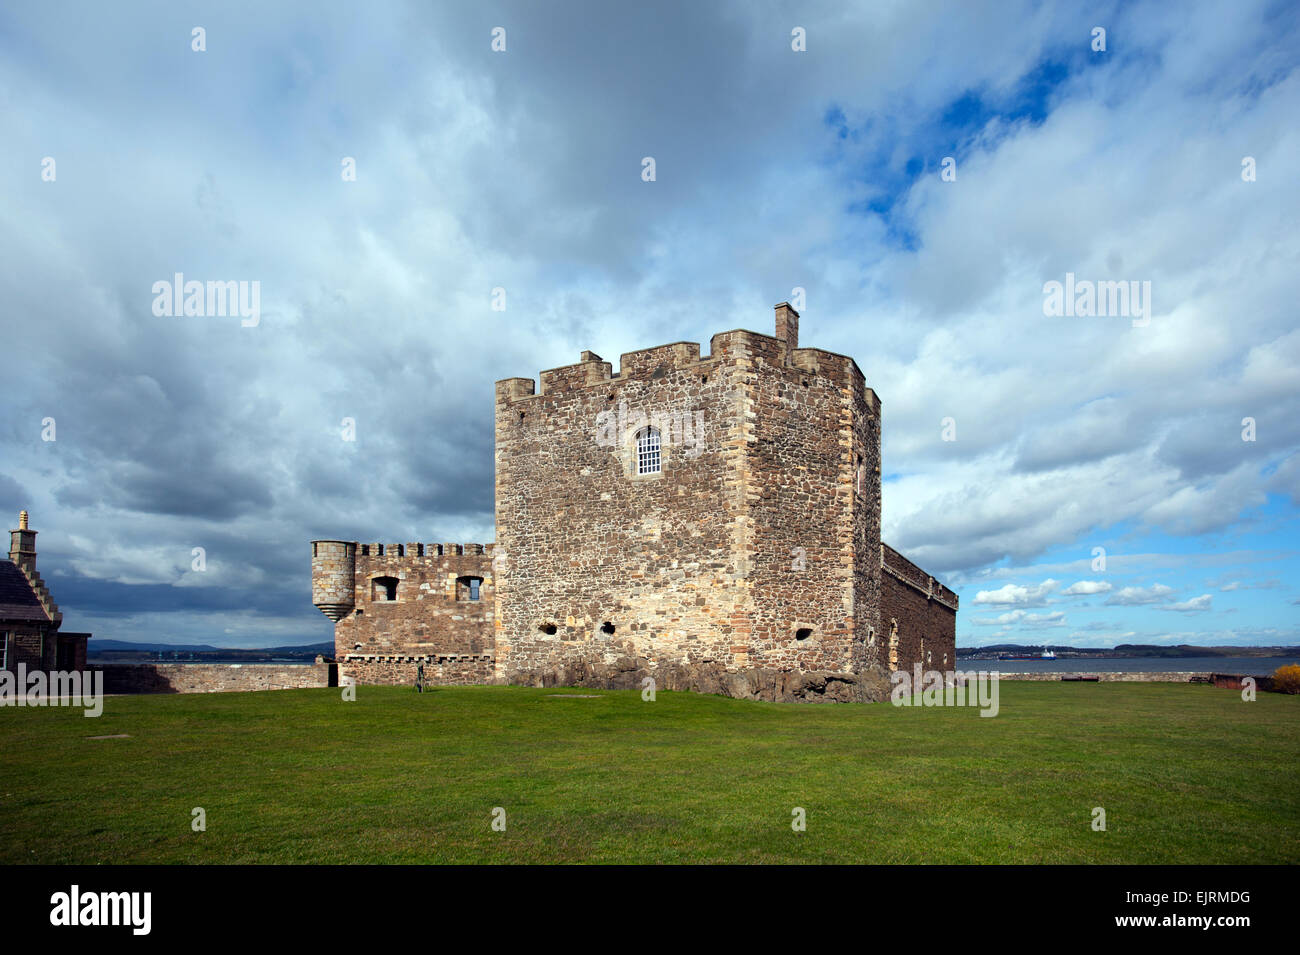 Scotland. Blackness Castle on the south bank of the Firth of Forth to the west of Edinburgh. March 2015 Stock Photo